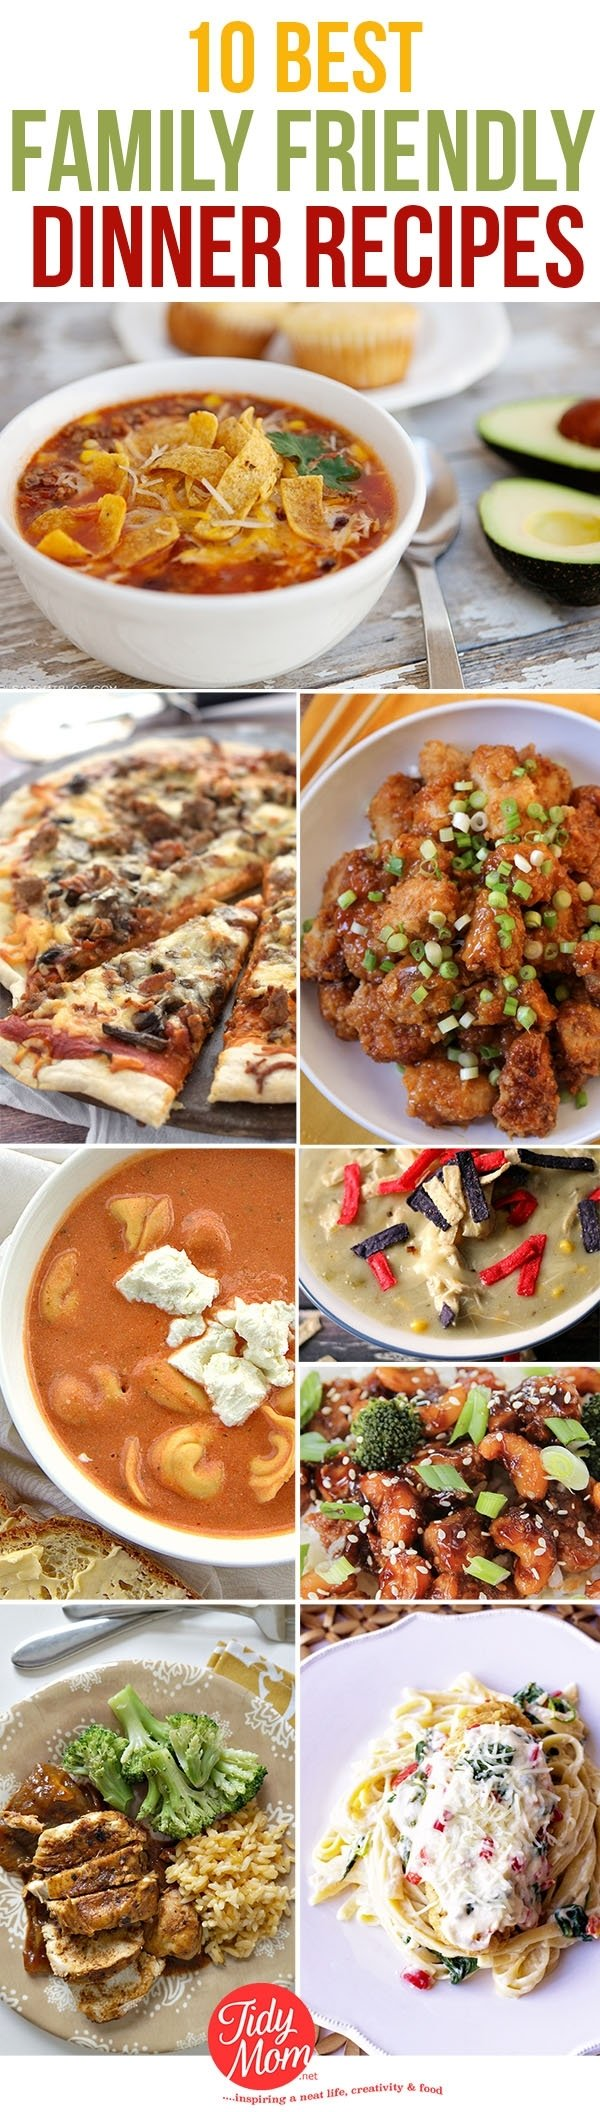 10 Unique Dinner Party Menu Ideas For 10 10 best family dinner recipes tidymom 2020